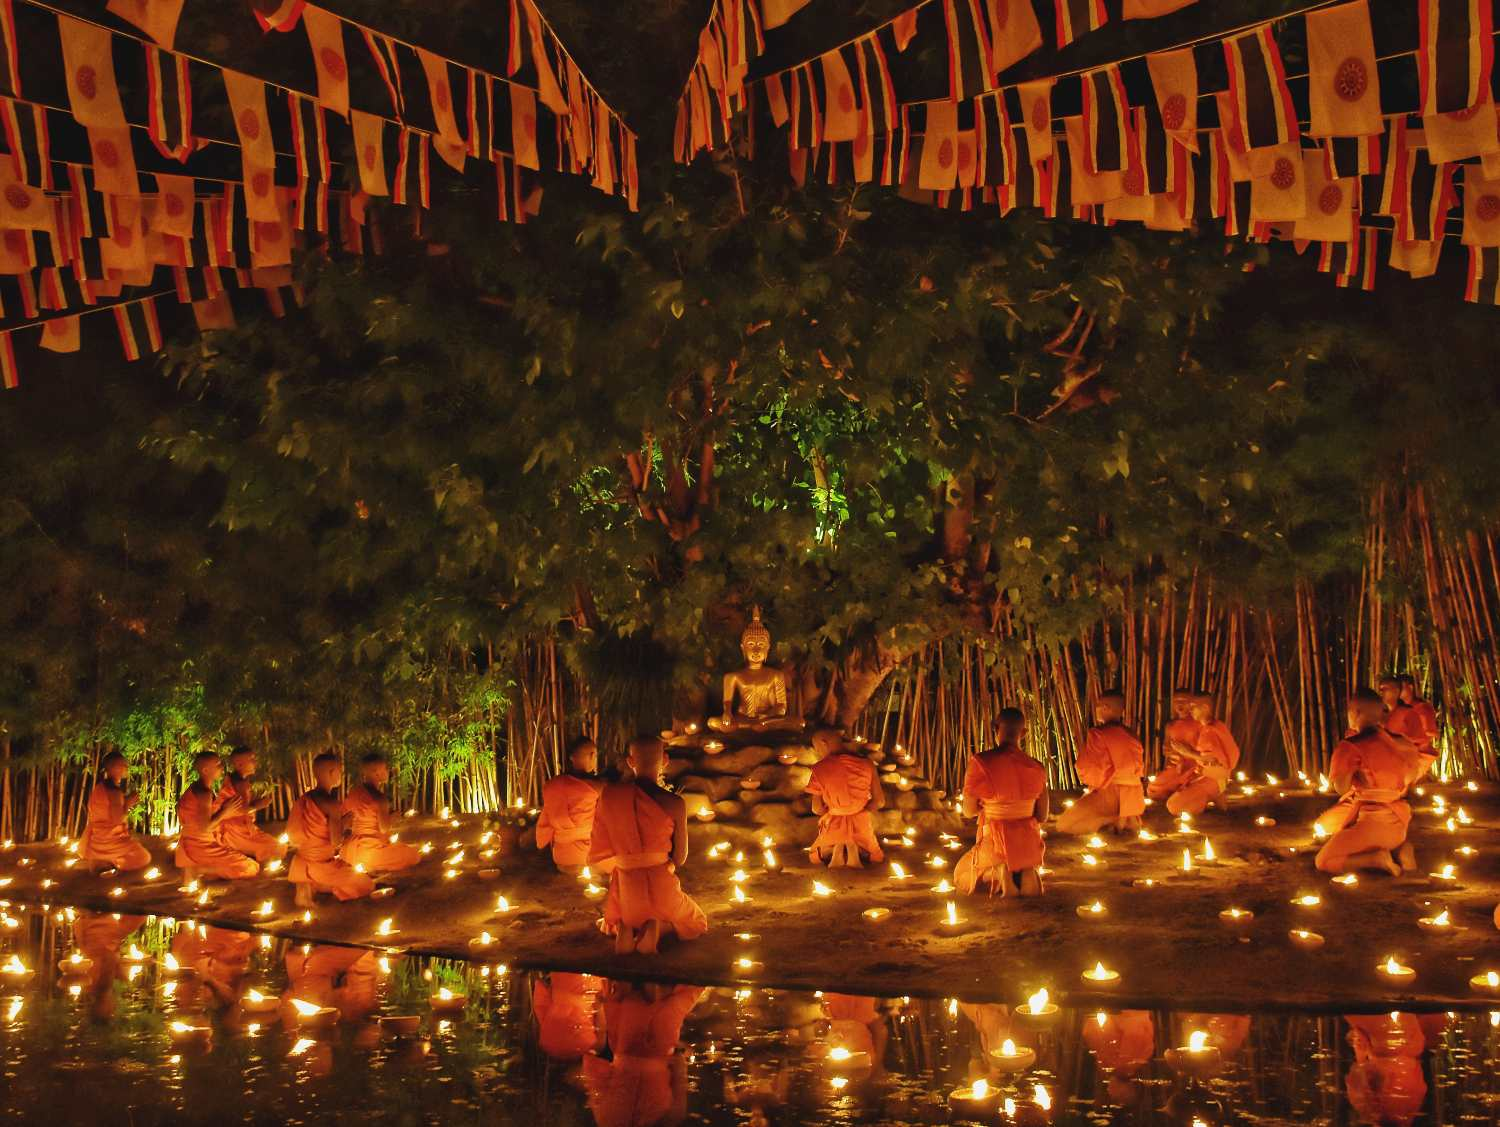 Wat Pan Toa in Chiang Mai during a Buddhist festival